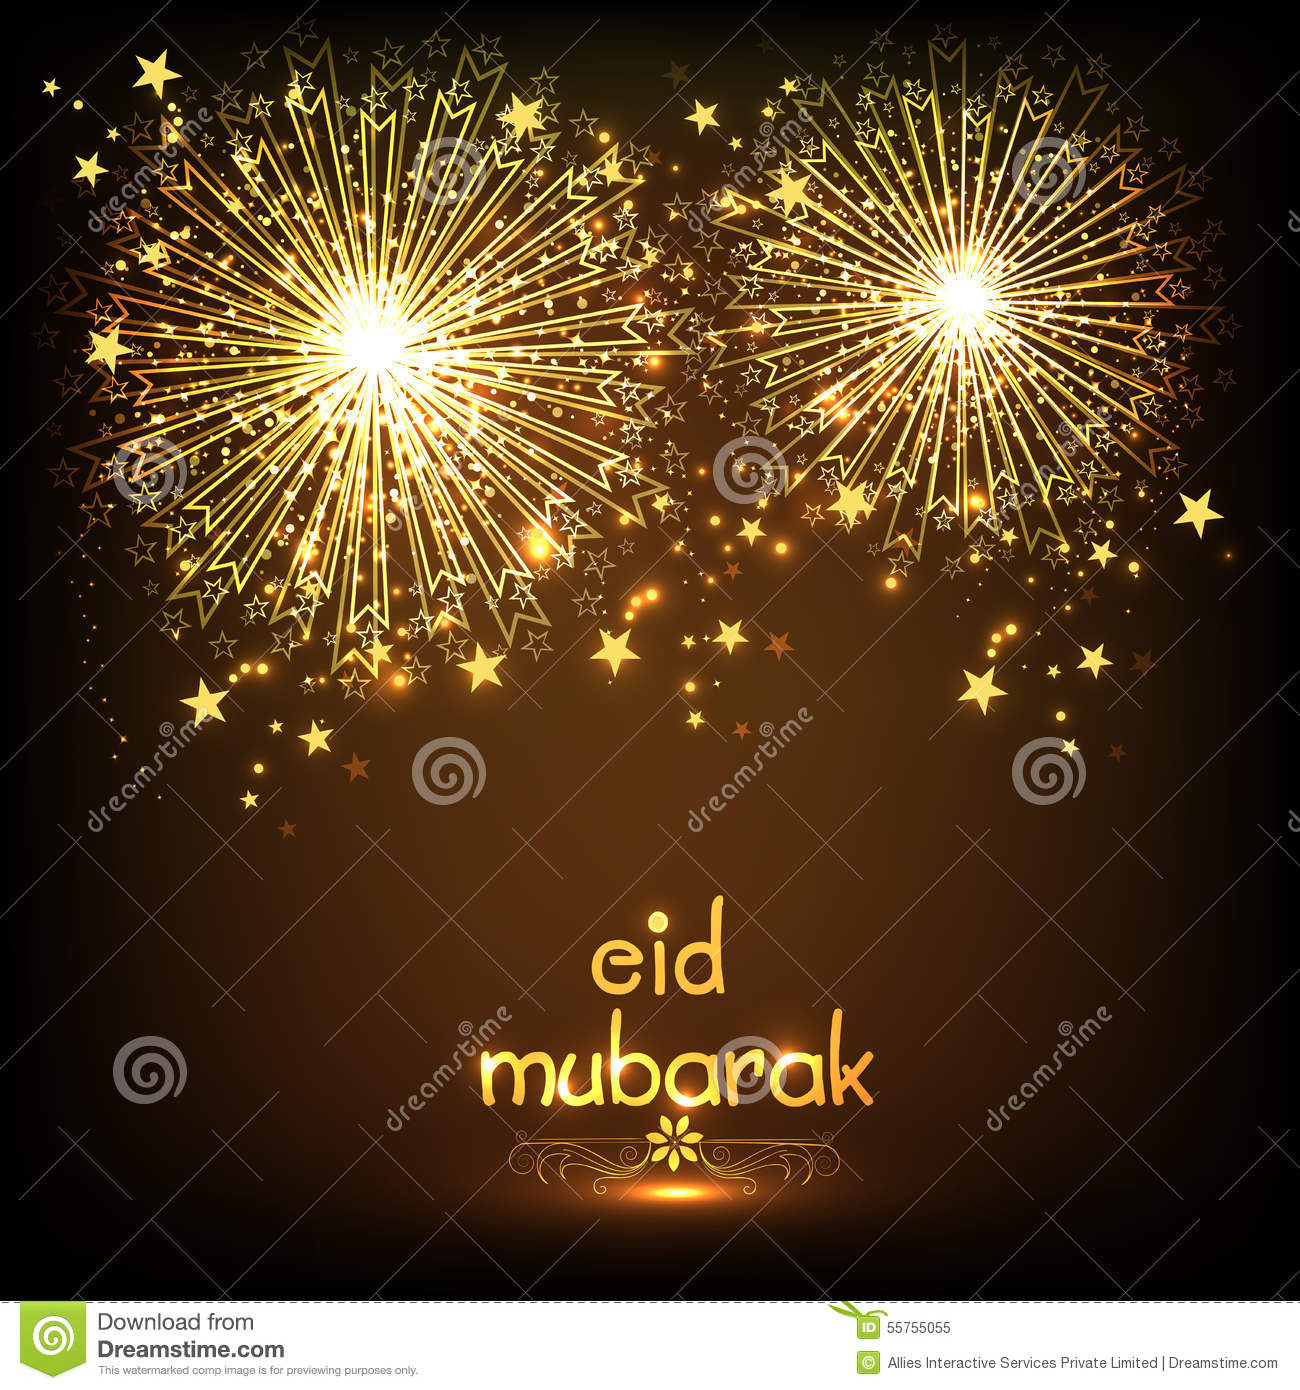 Greeting card with firecrackers for eid mubarak stock illustration greeting card with firecrackers for eid mubarak kristyandbryce Choice Image